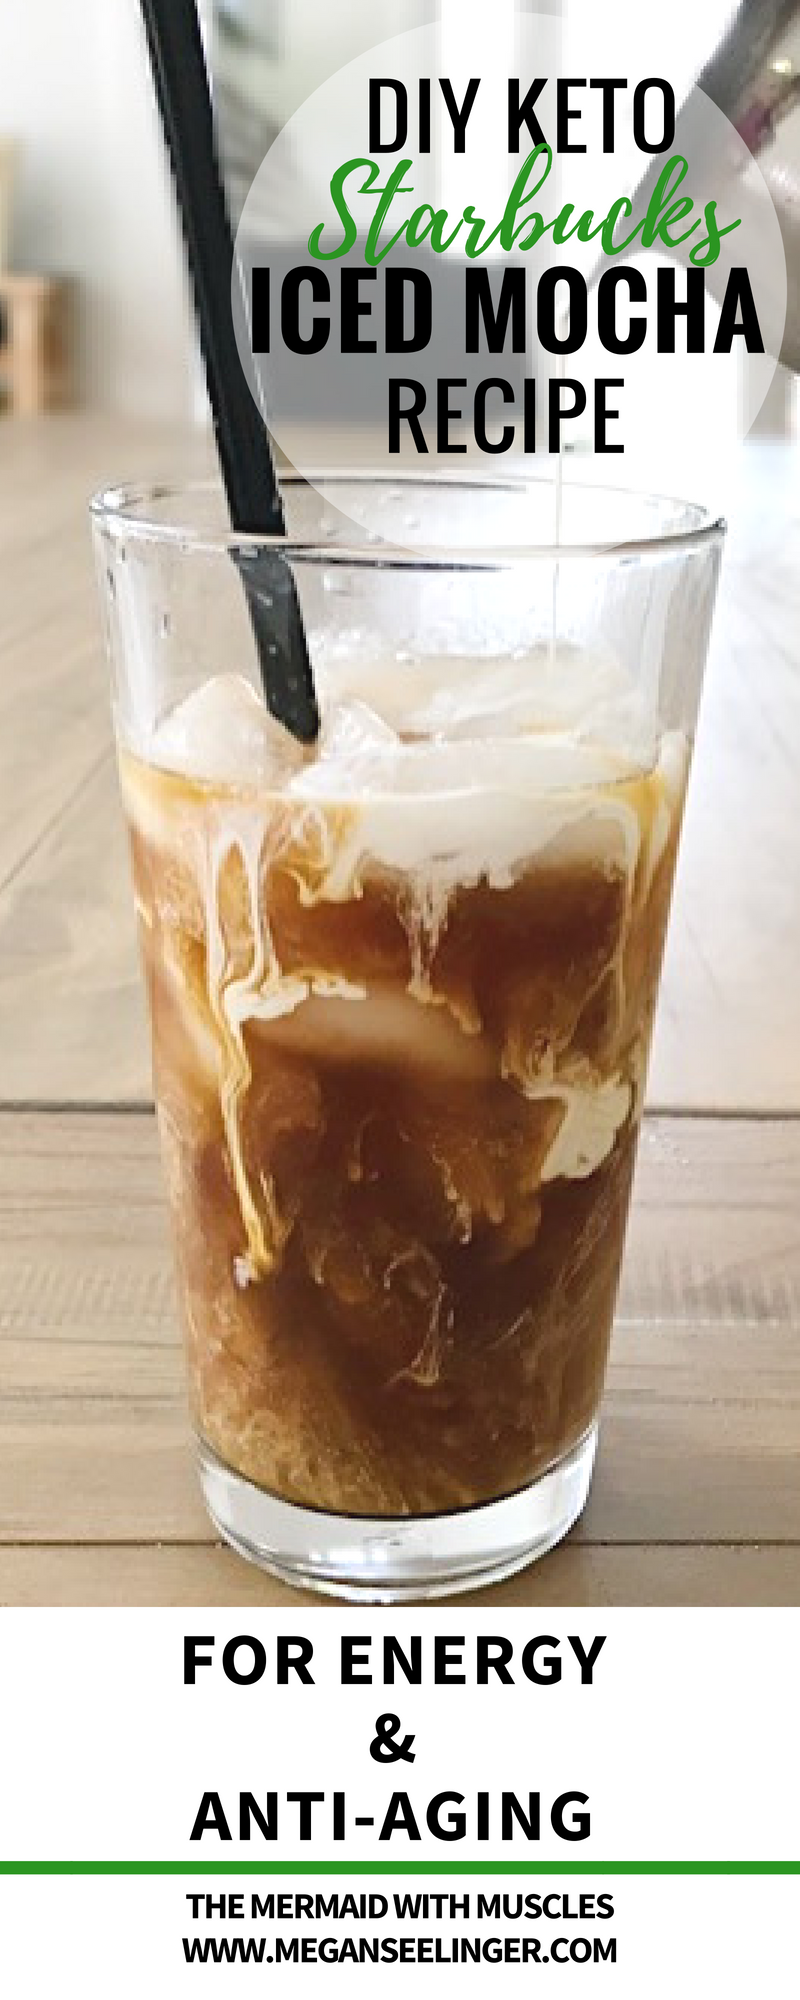 This Keto Friendly Starbucks Iced Coffee Is On My Daily Diet Menu And A Easy